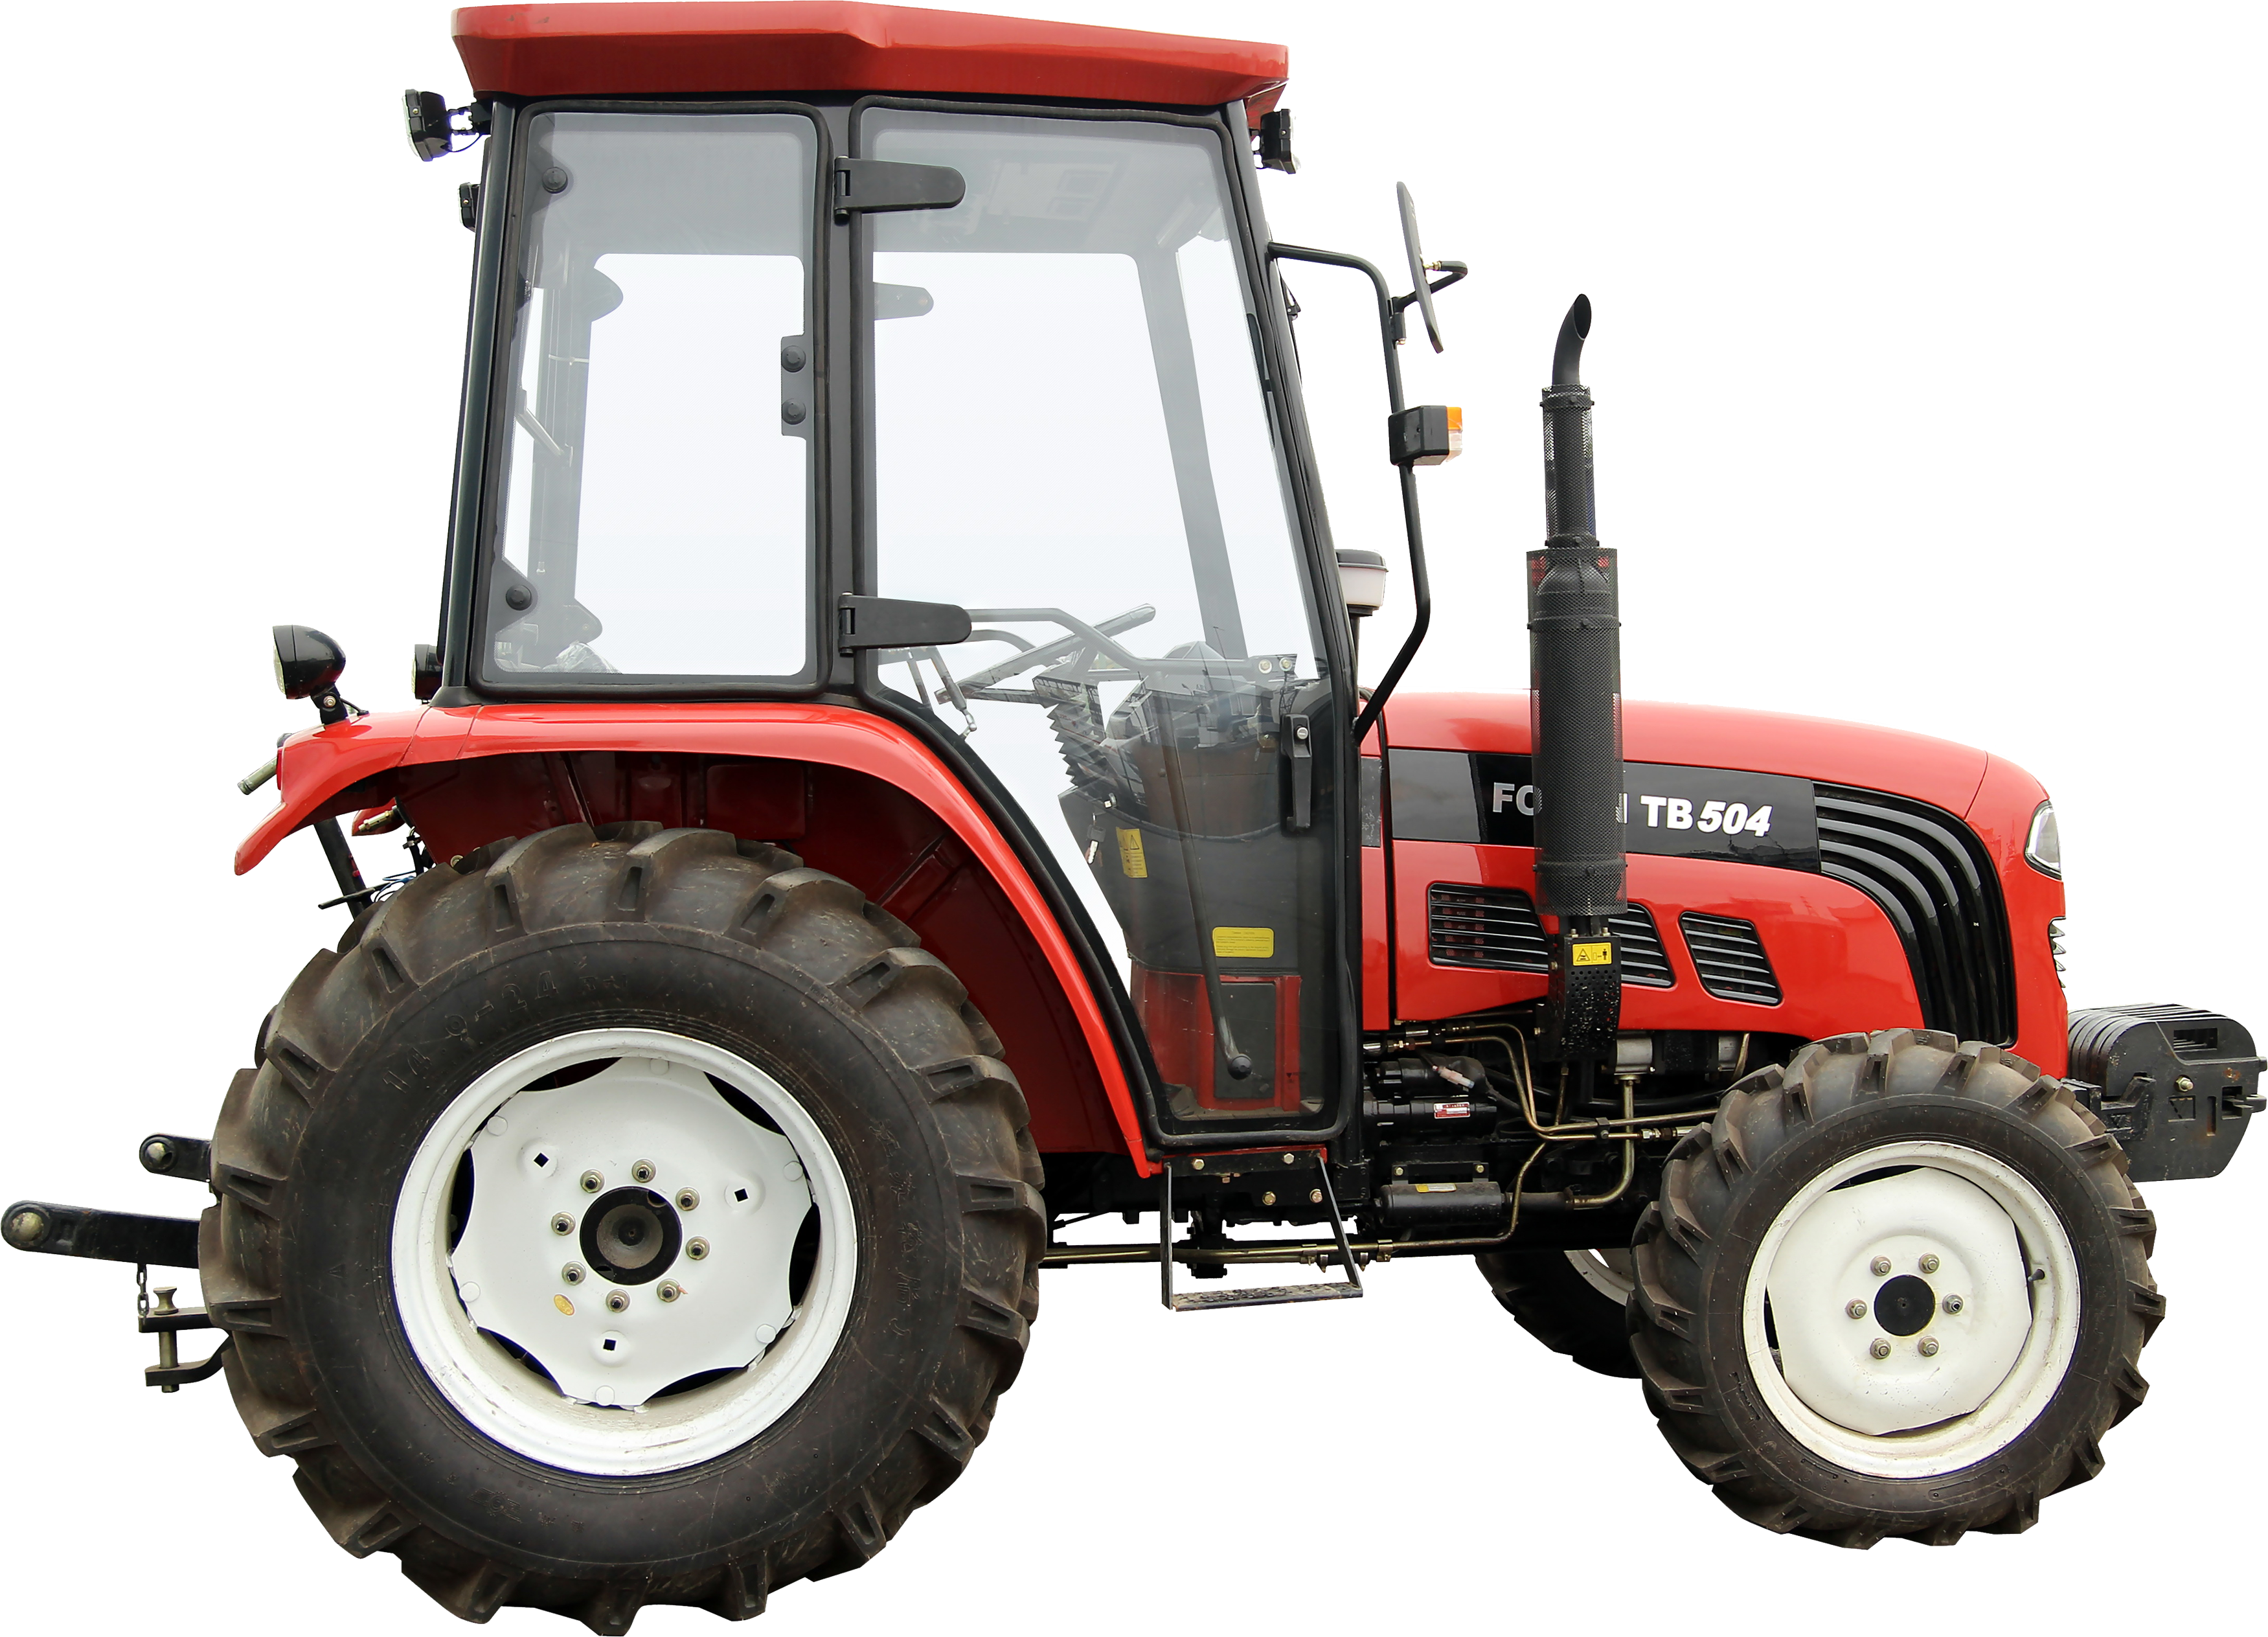 Wheel clipart tractor wheel. Red png image purepng